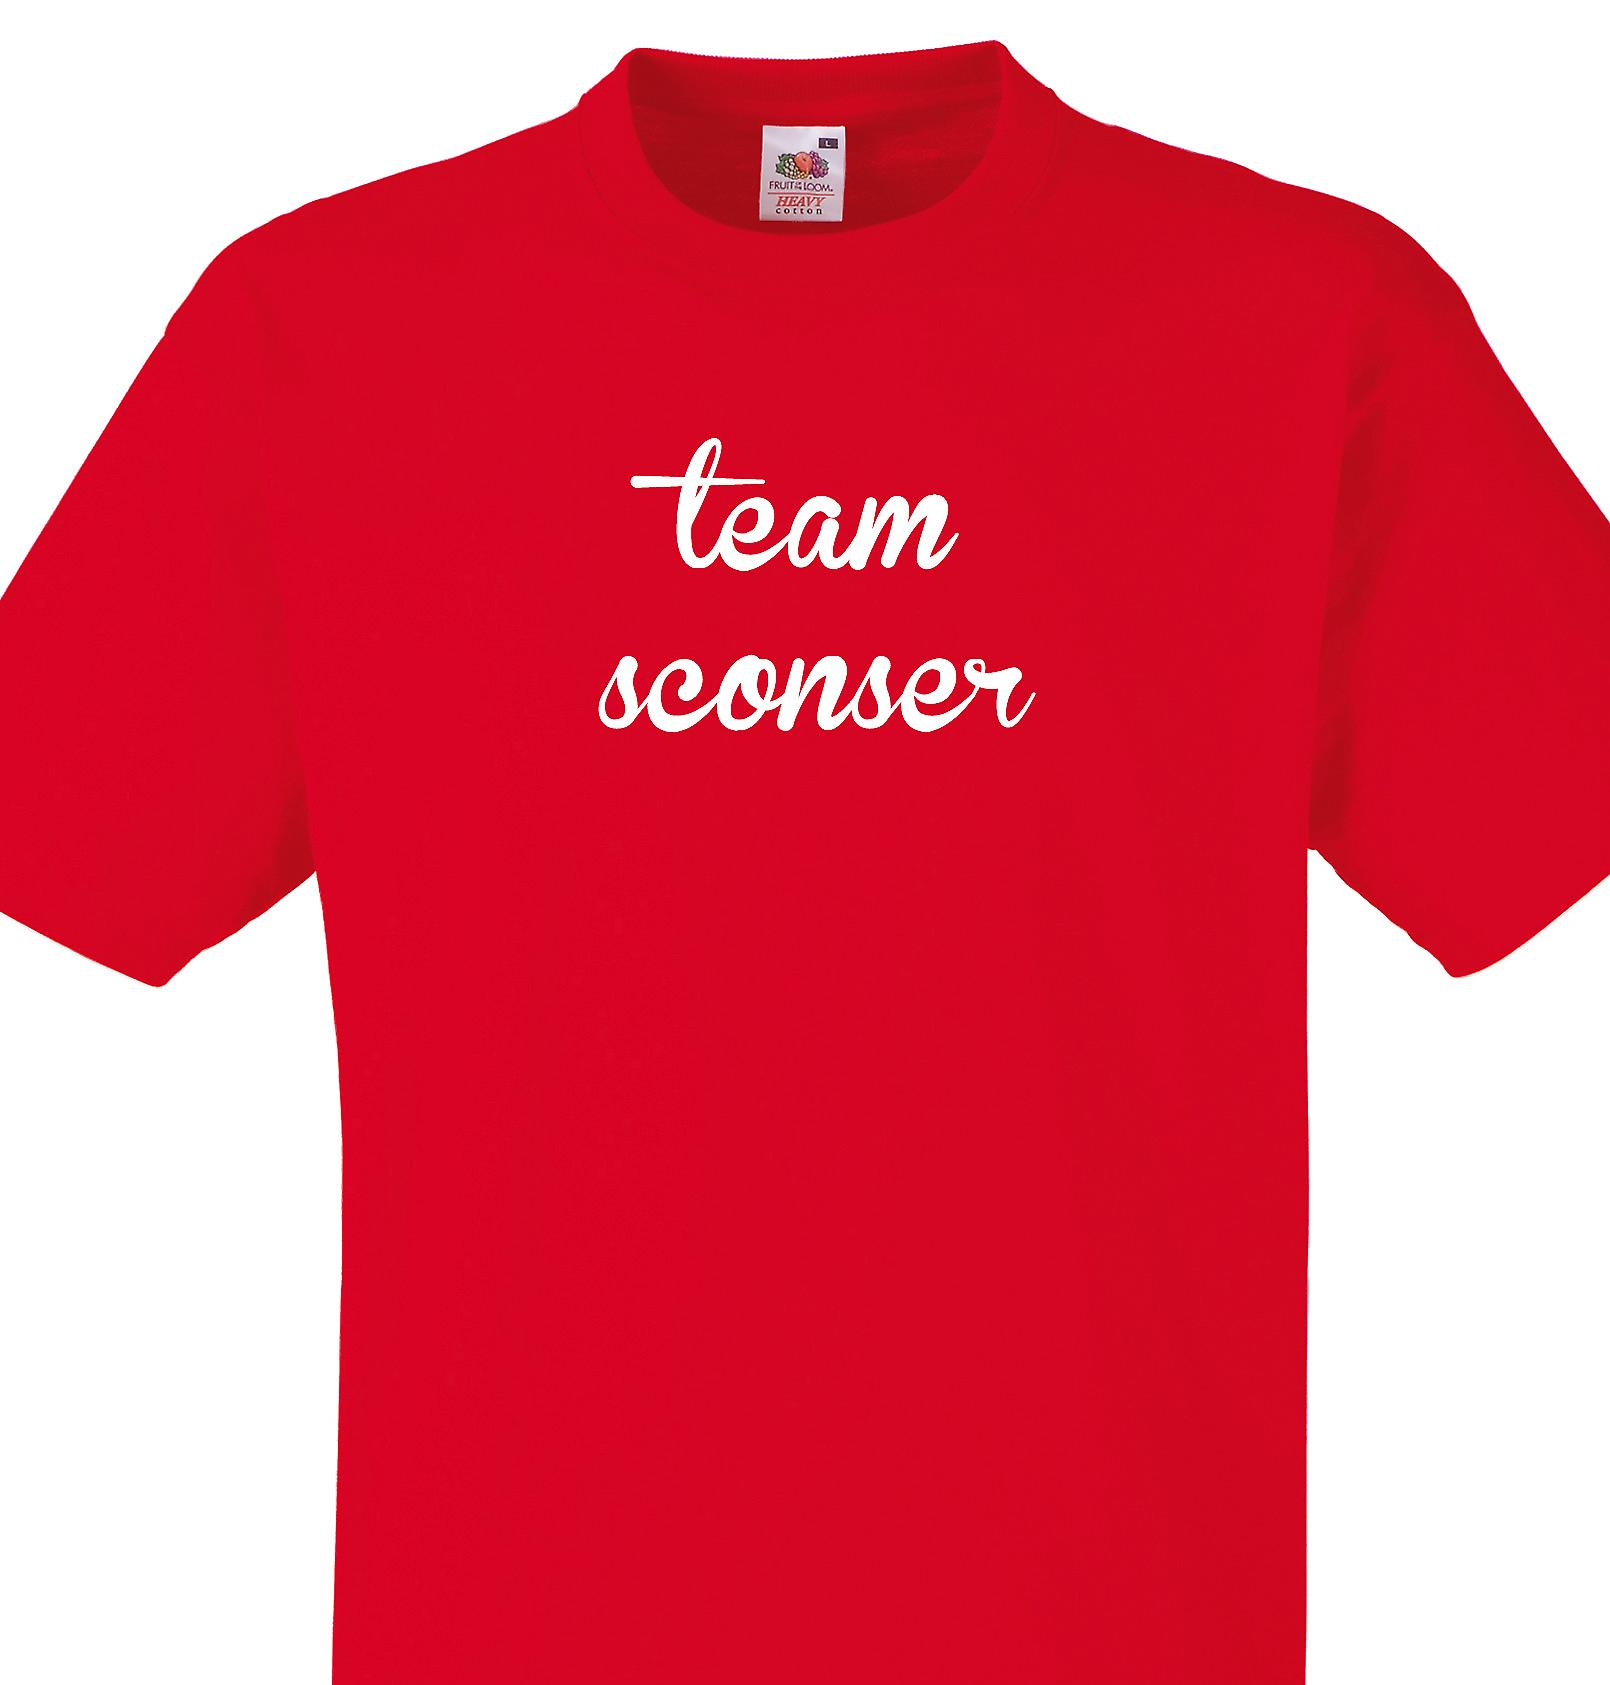 Team Sconser Red T shirt